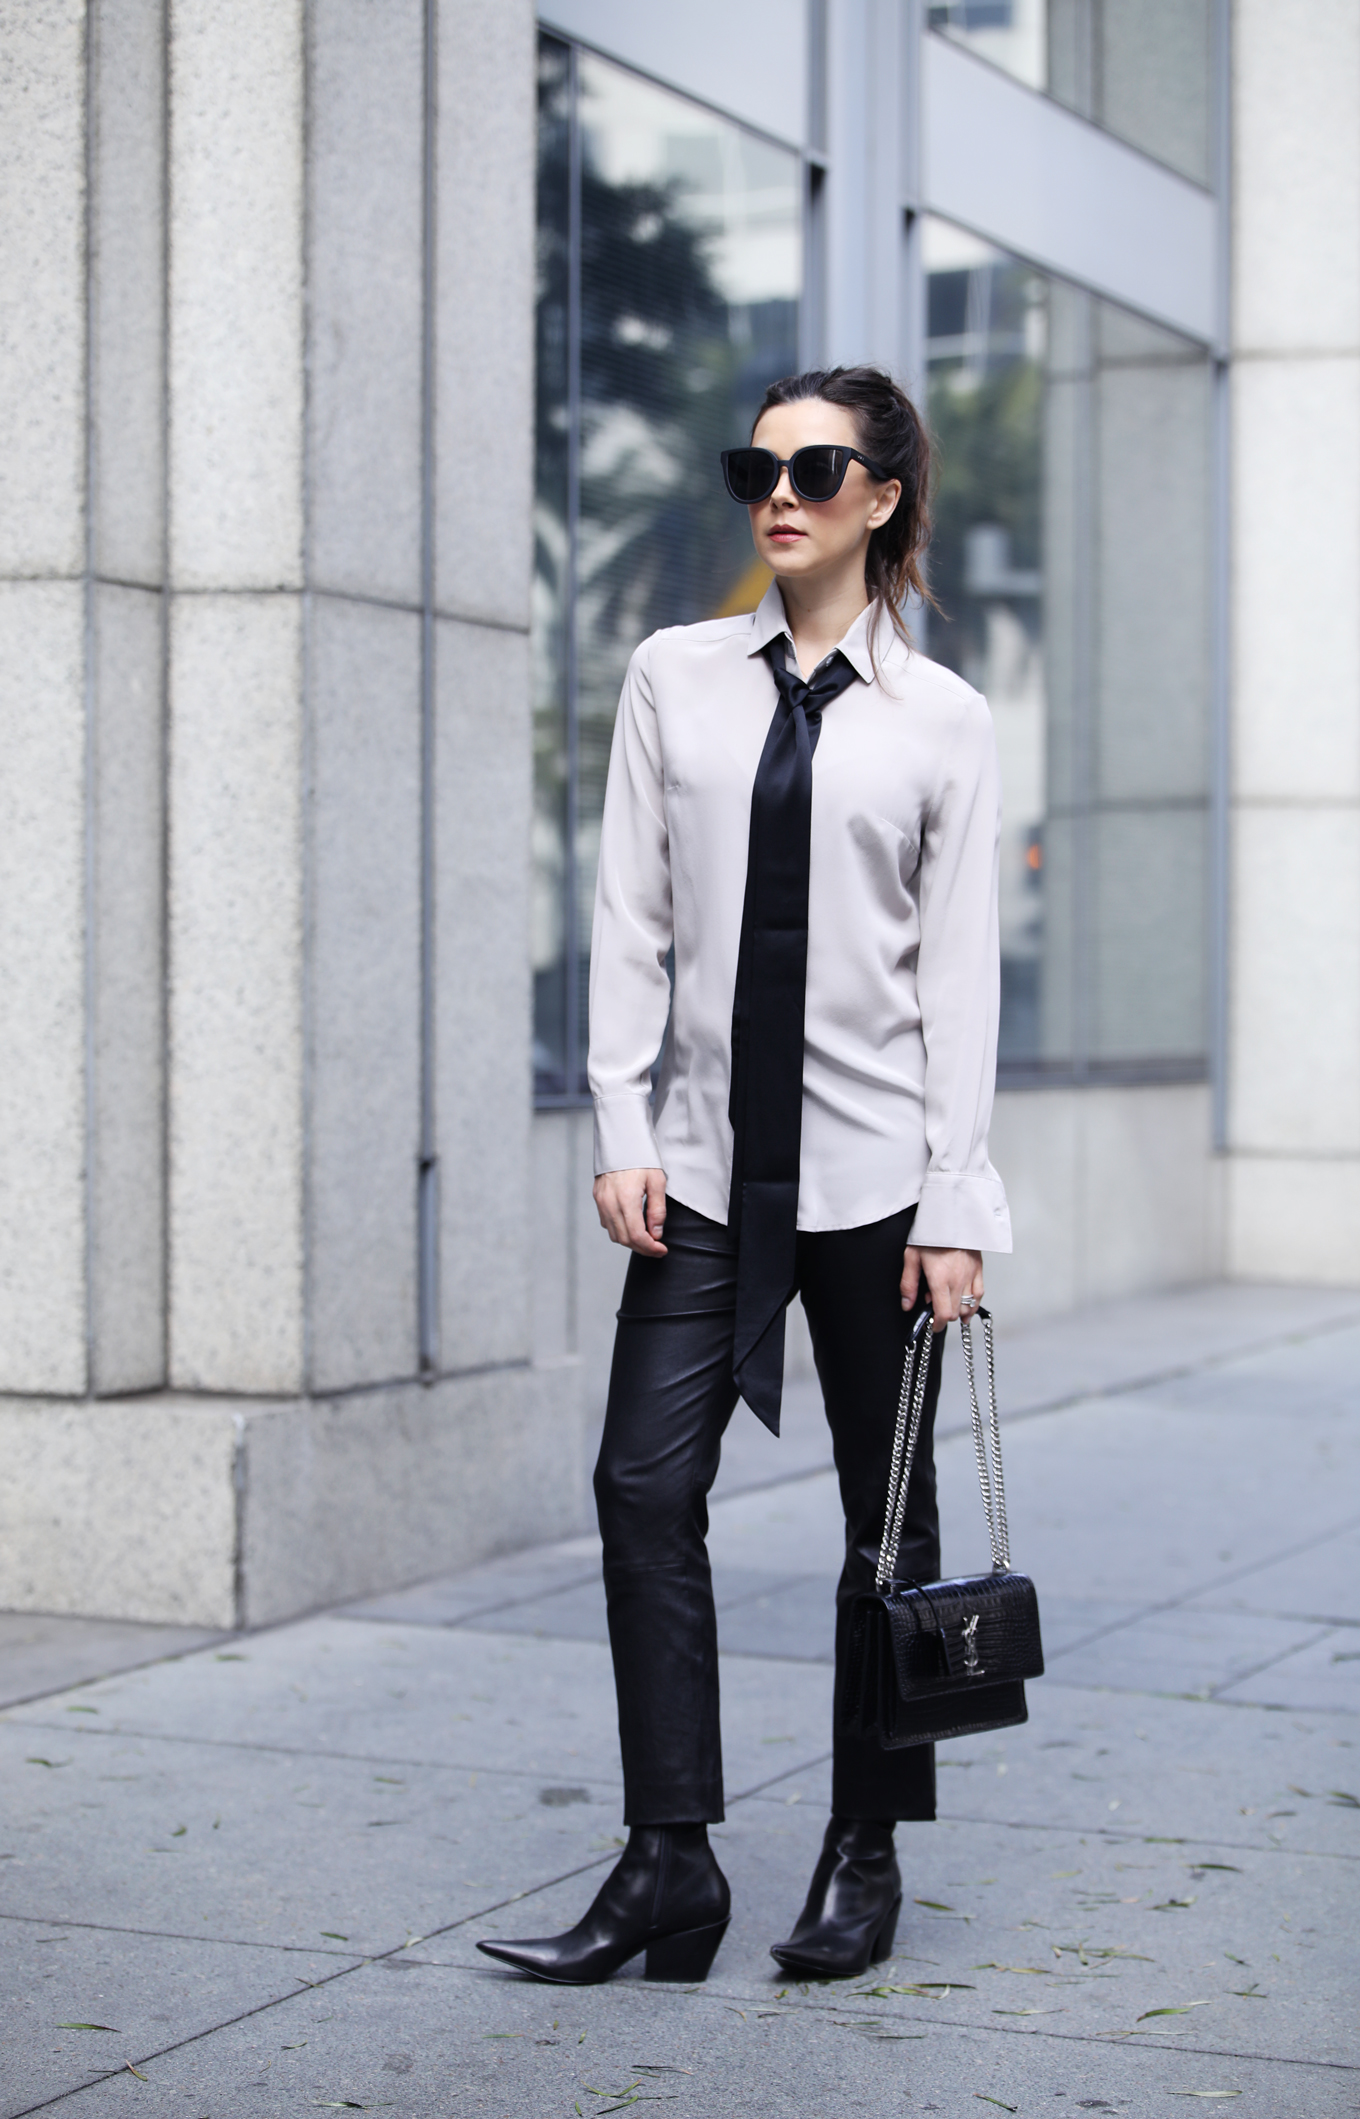 The Dress Shirt Marie Claire St. John